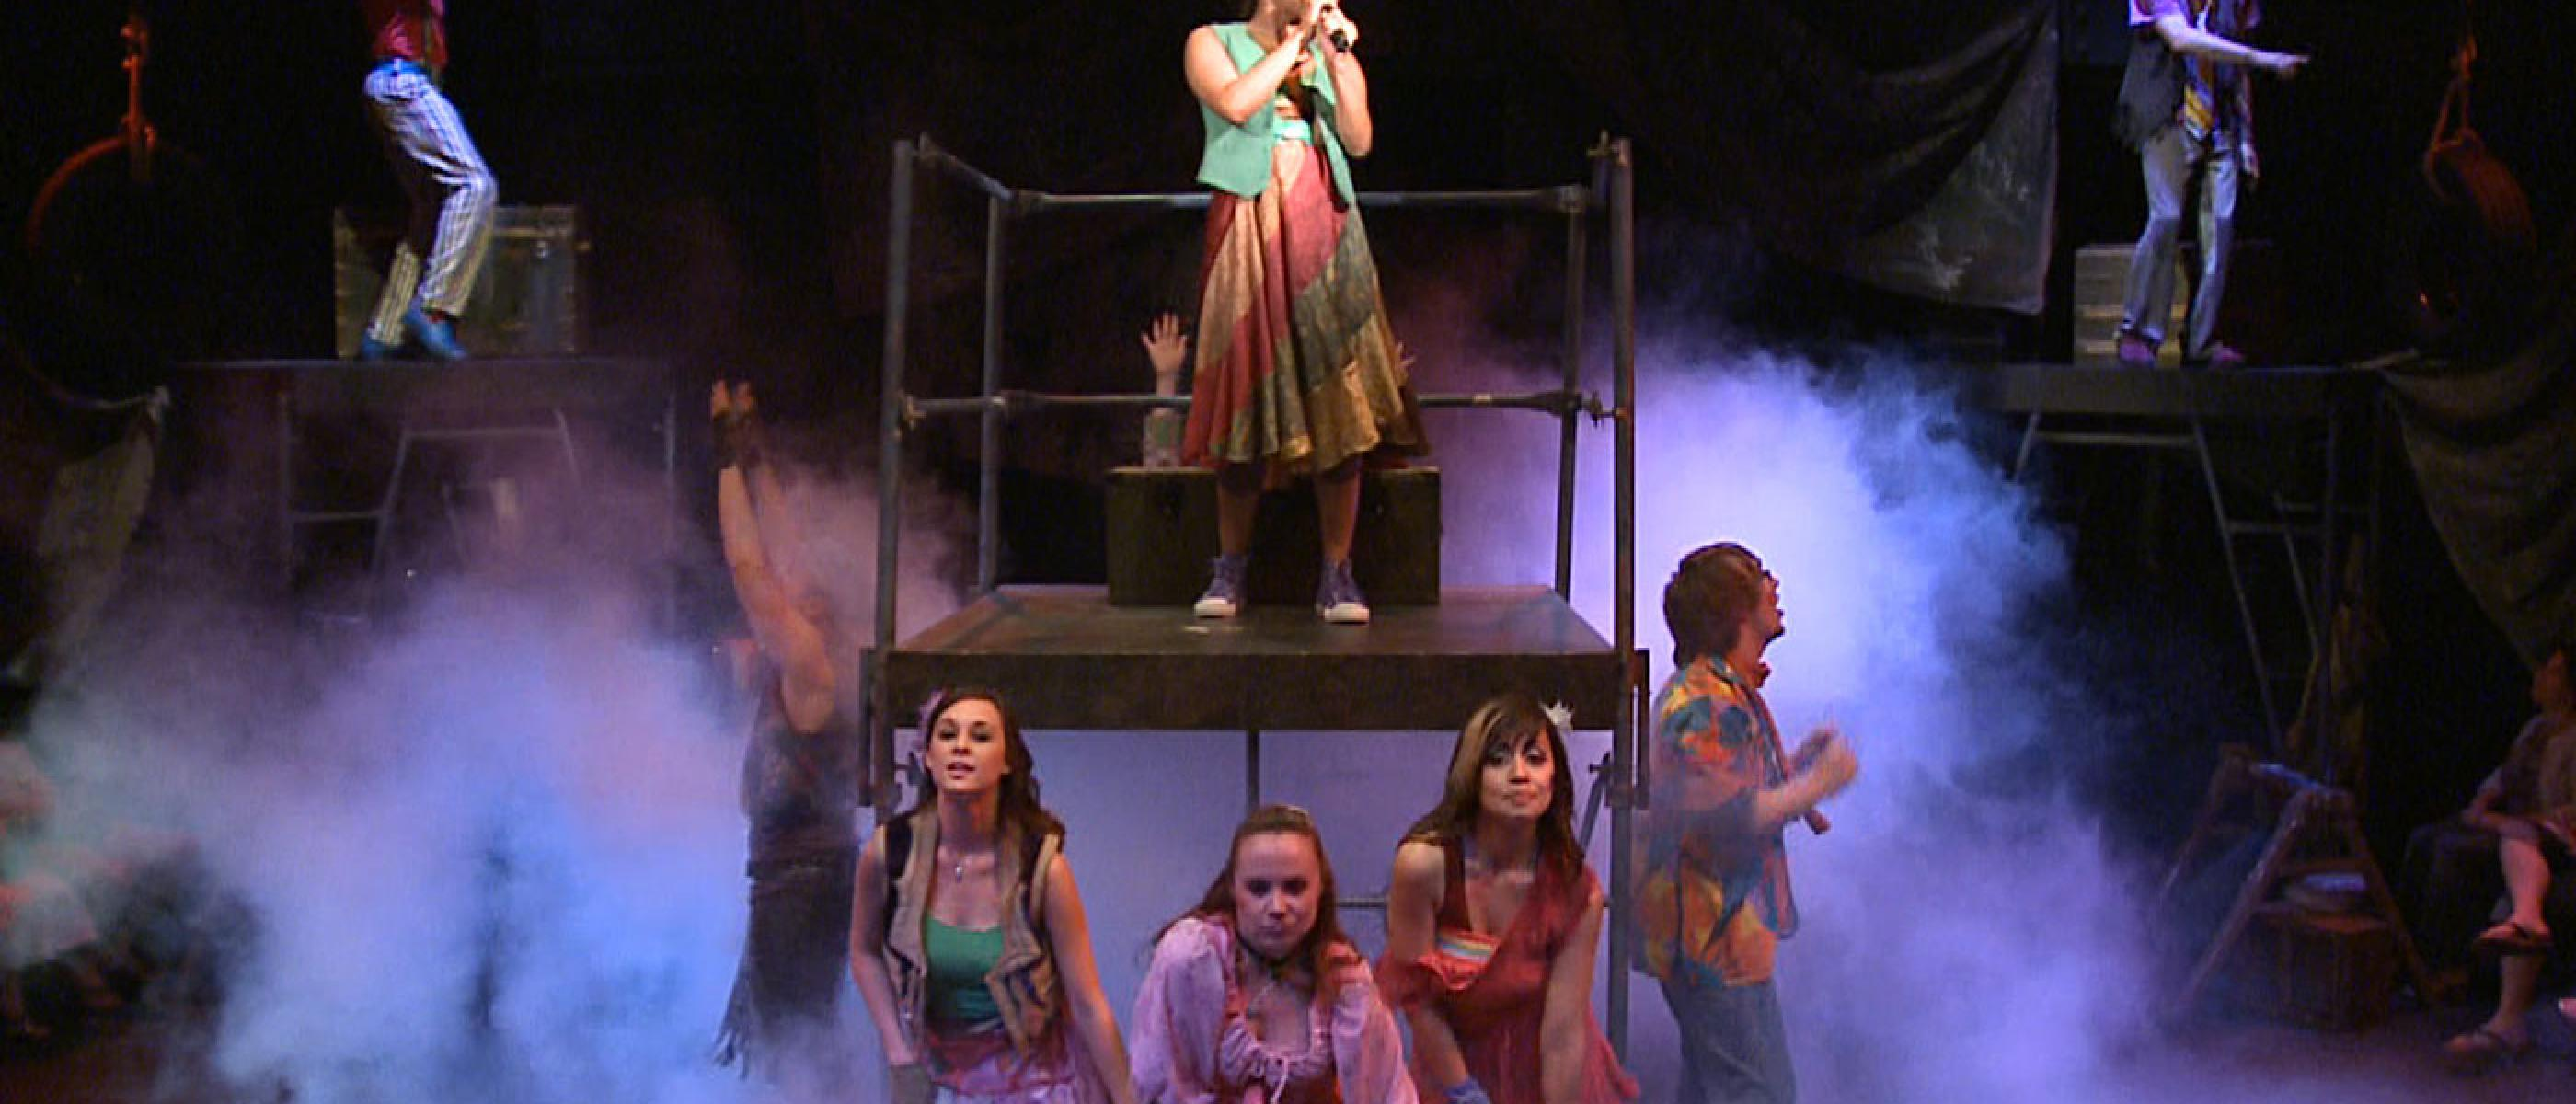 Students perform Godspell on stage